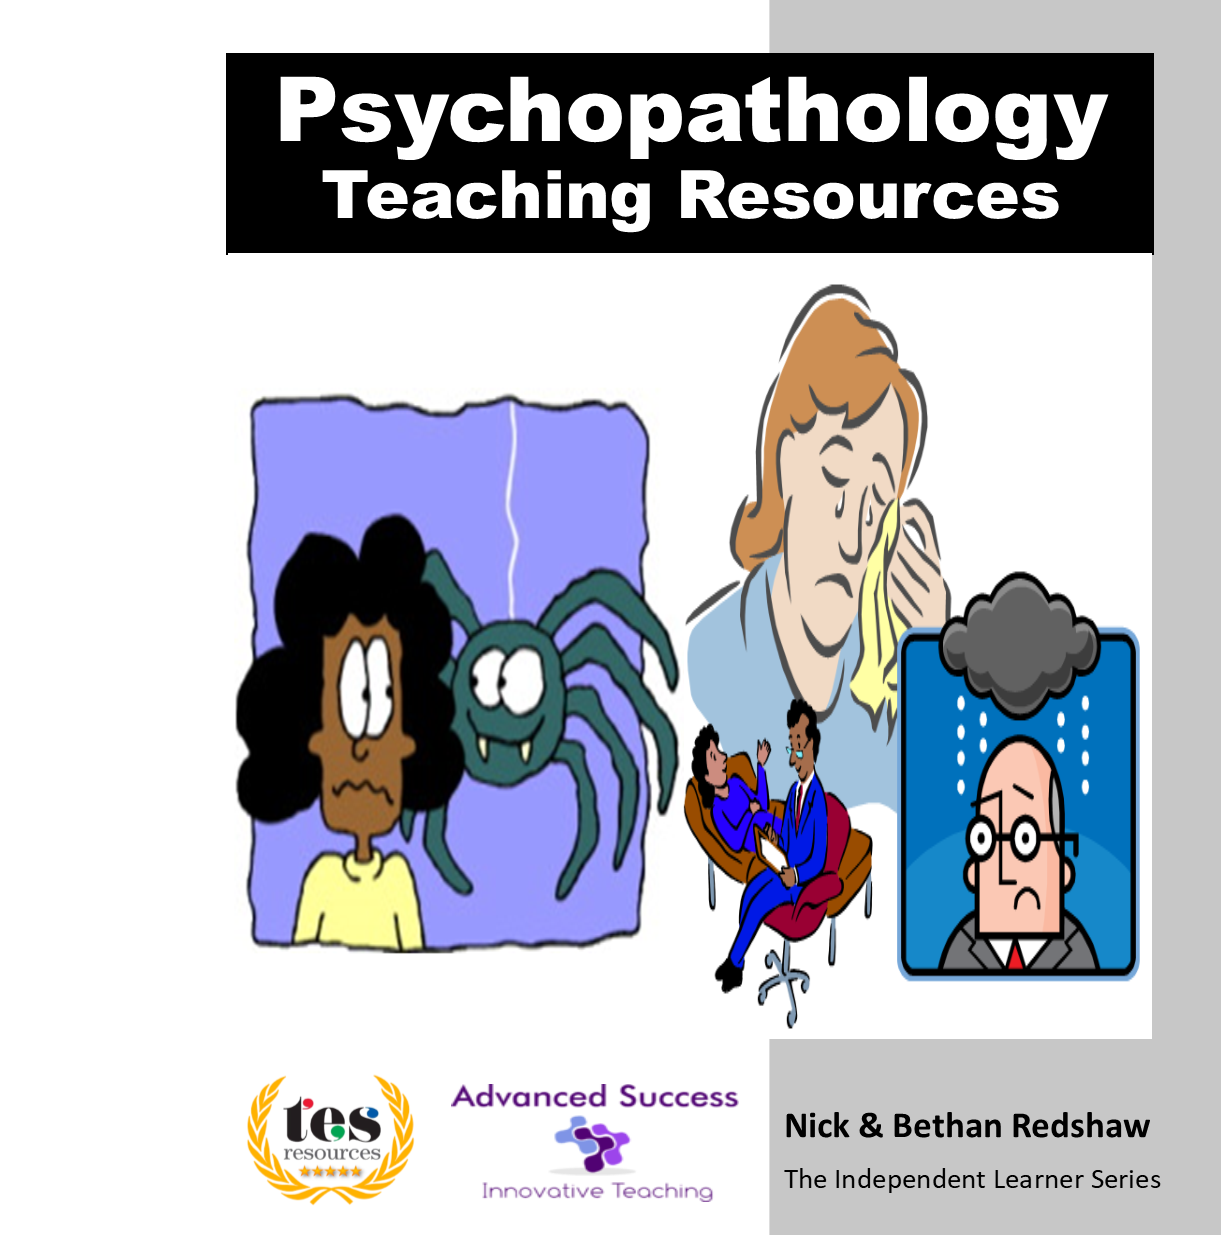 Paper 1  - PSYCHOPATHOLOGY - SPECIAL OFFER  (46% Off) Workbook, Lesson Plans and PowerPoint's Bundle